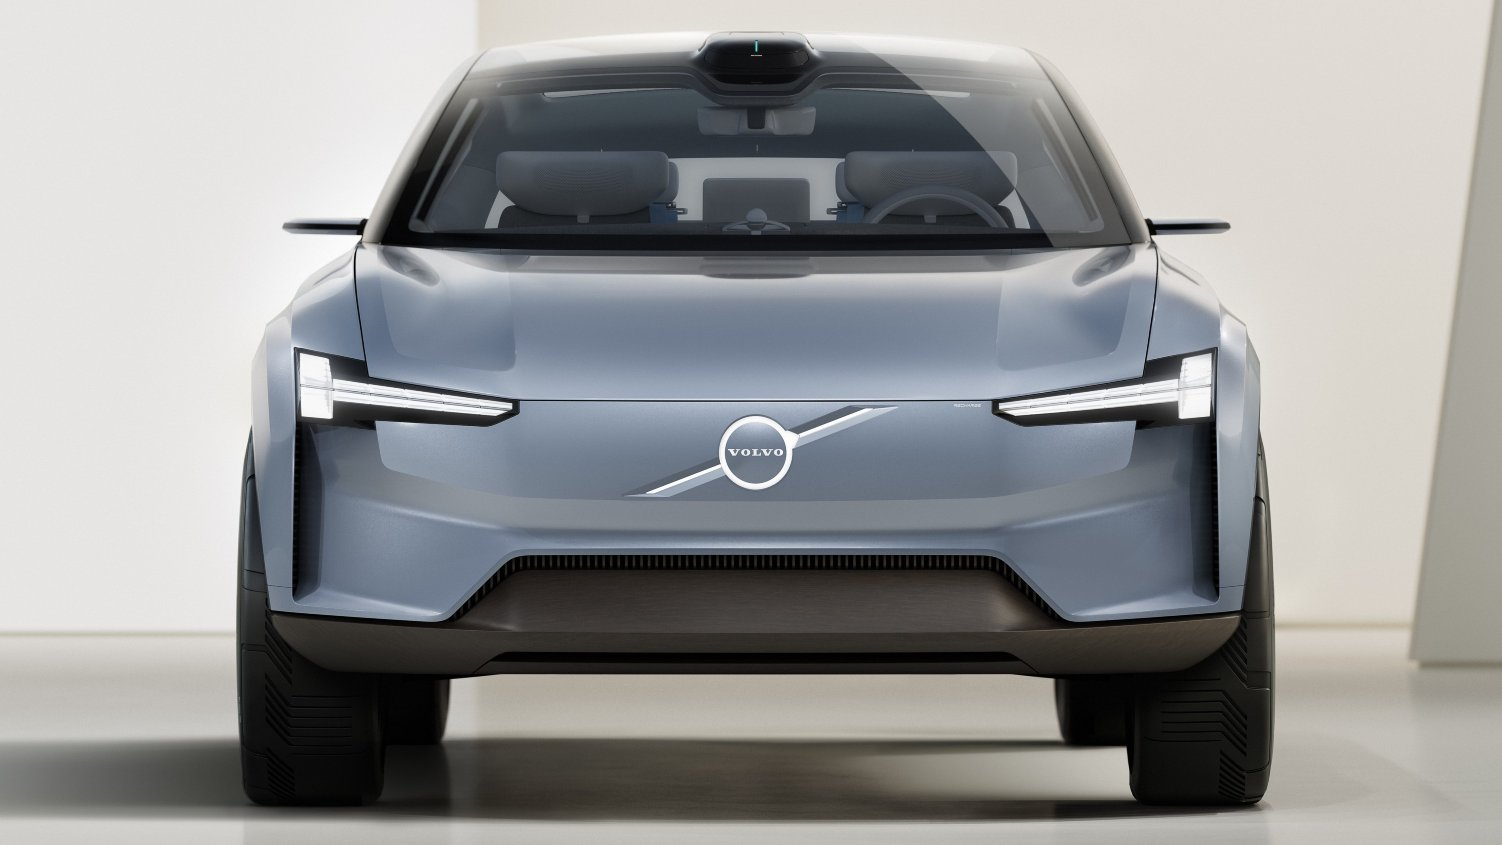 1000 km range, internal operating systems and Concept Recharge- Technology News, Firstpost